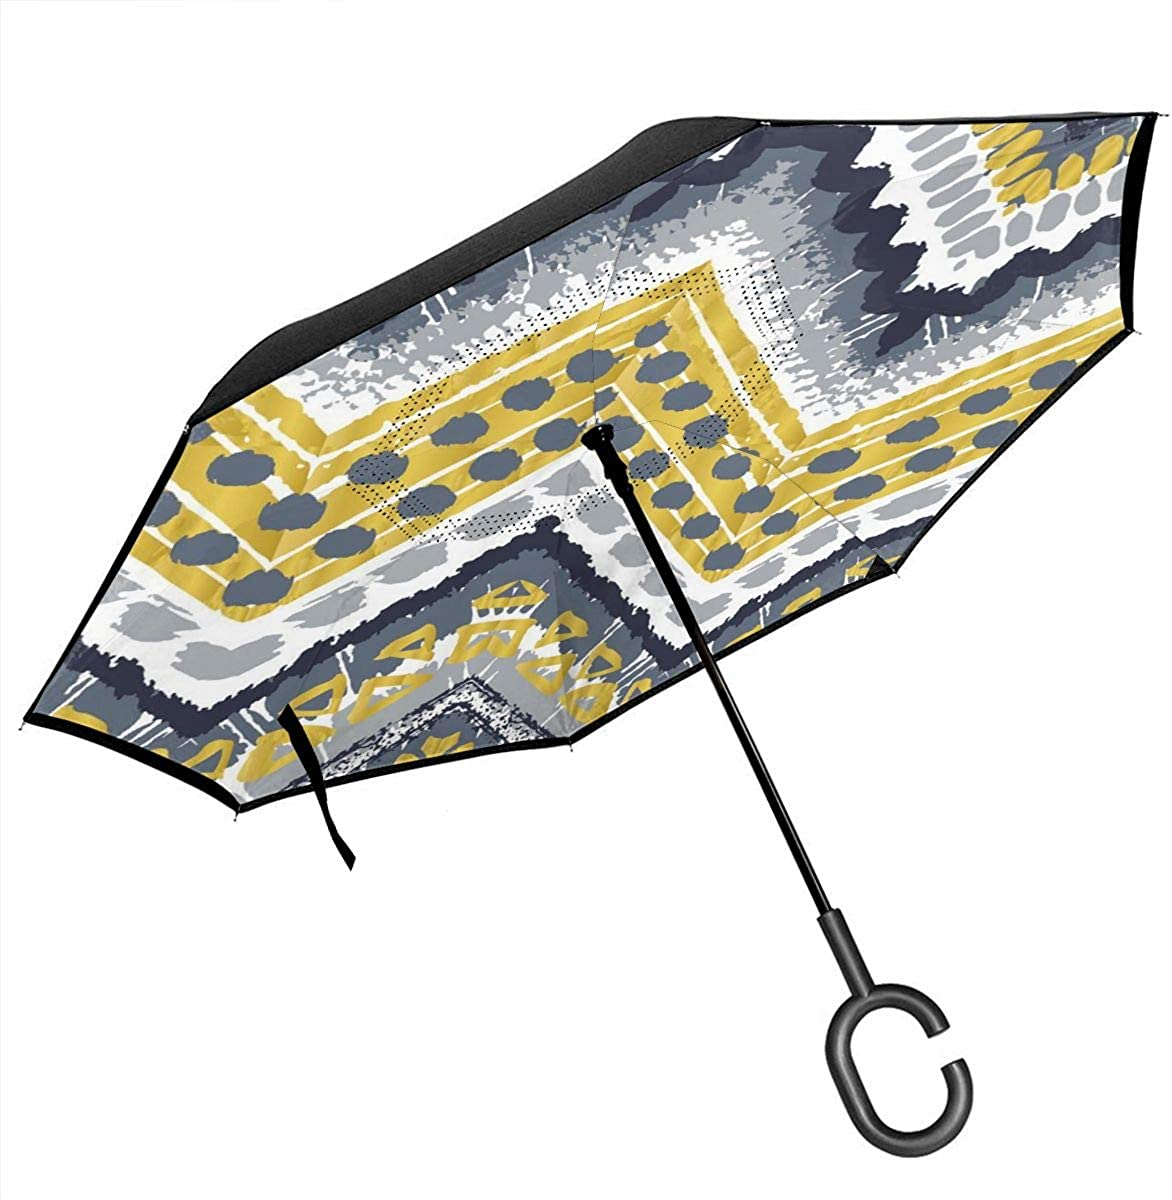 Tribal Ethnic Seamless Pattern Reverse Umbrella Double Layer Inverted Umbrellas For Car Rain Outdoor With C-Shaped Handle Customized